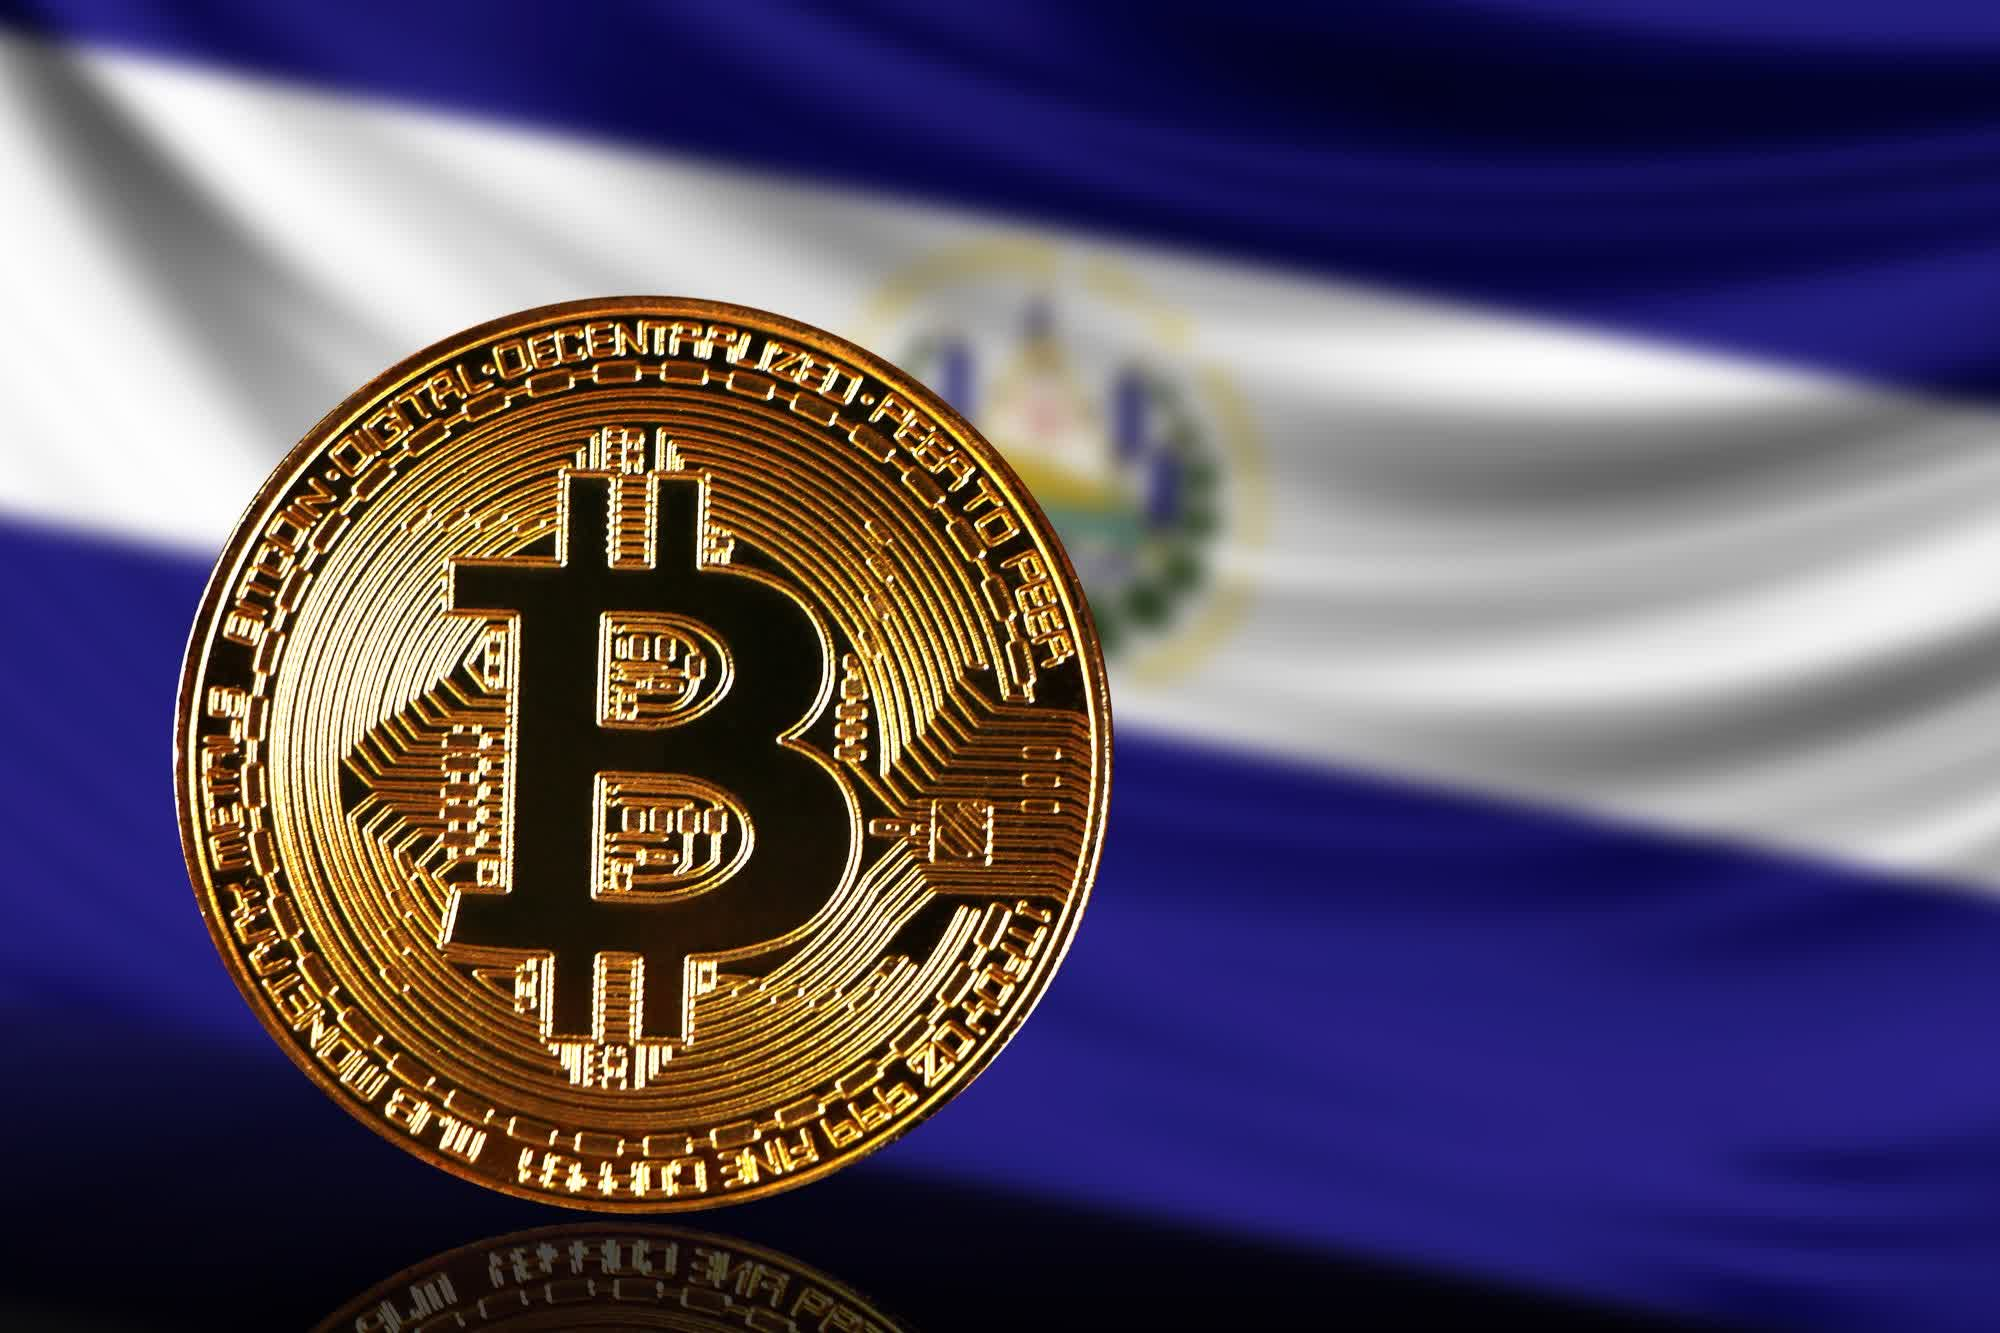 El Salvador's volcano-powered Bitcoin mining project produces its first currency